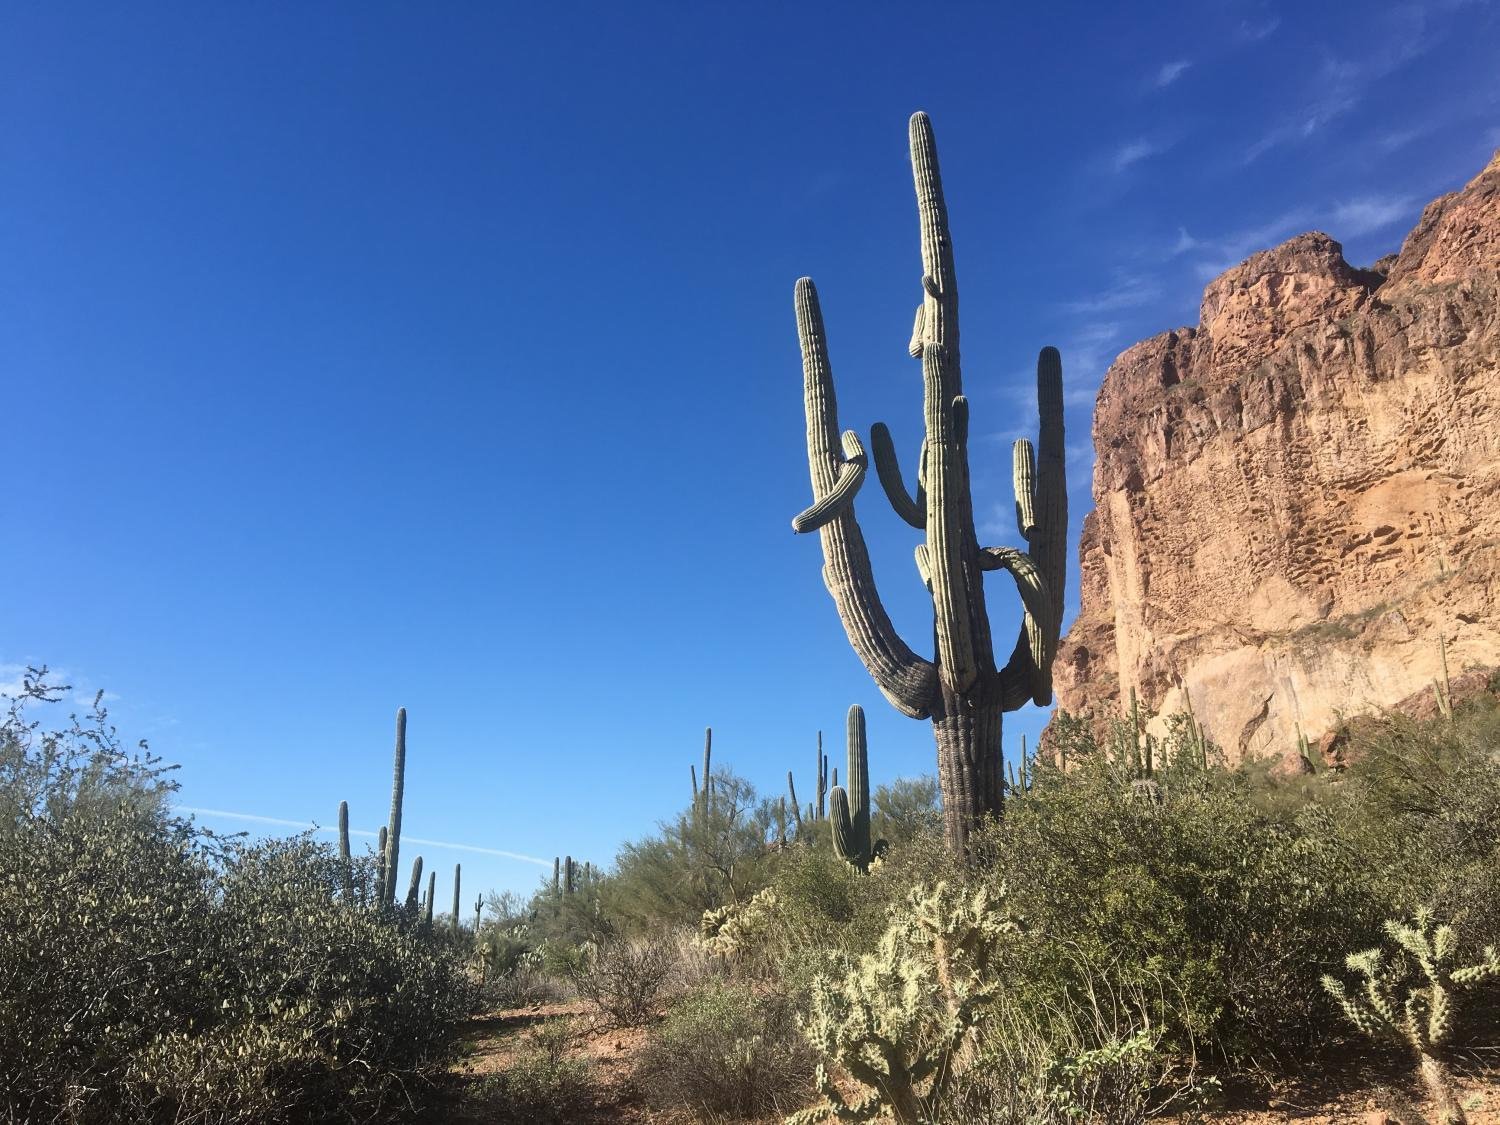 A saguaro cactus near the Superstition Mountains